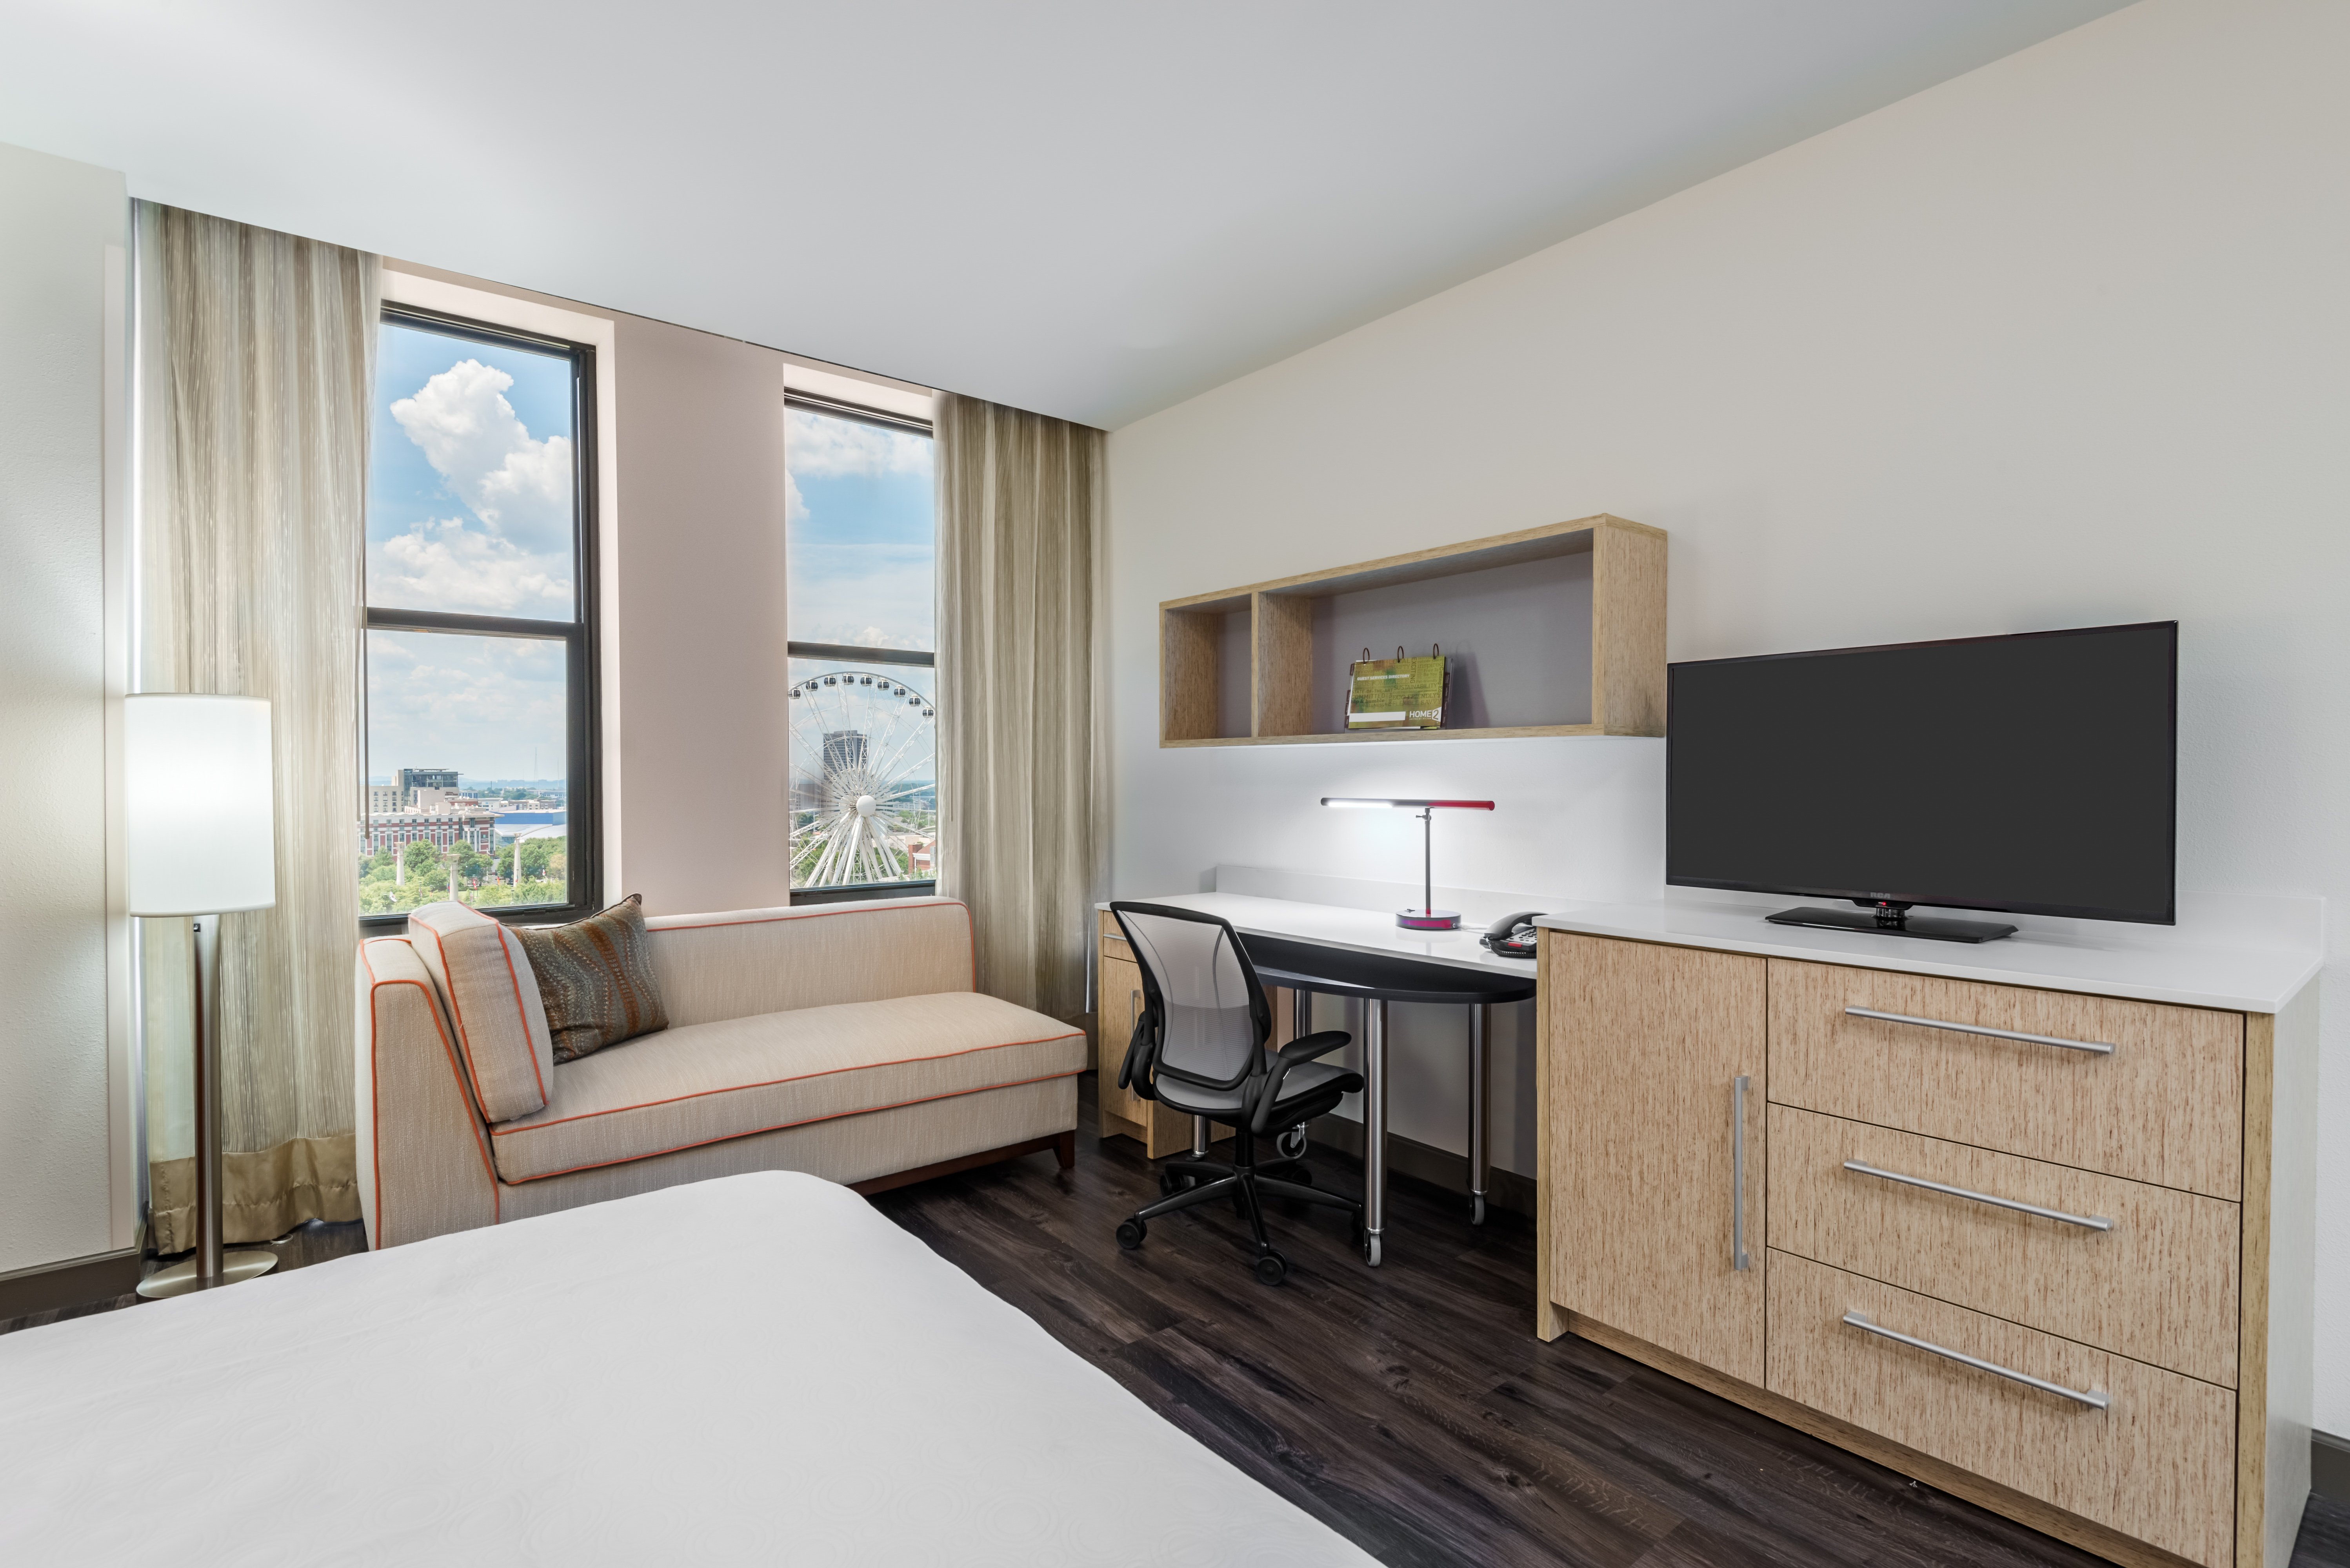 Home2 Suites by Hilton Atlanta Downtown UPDATED 2017 Hotel Reviews & Pr